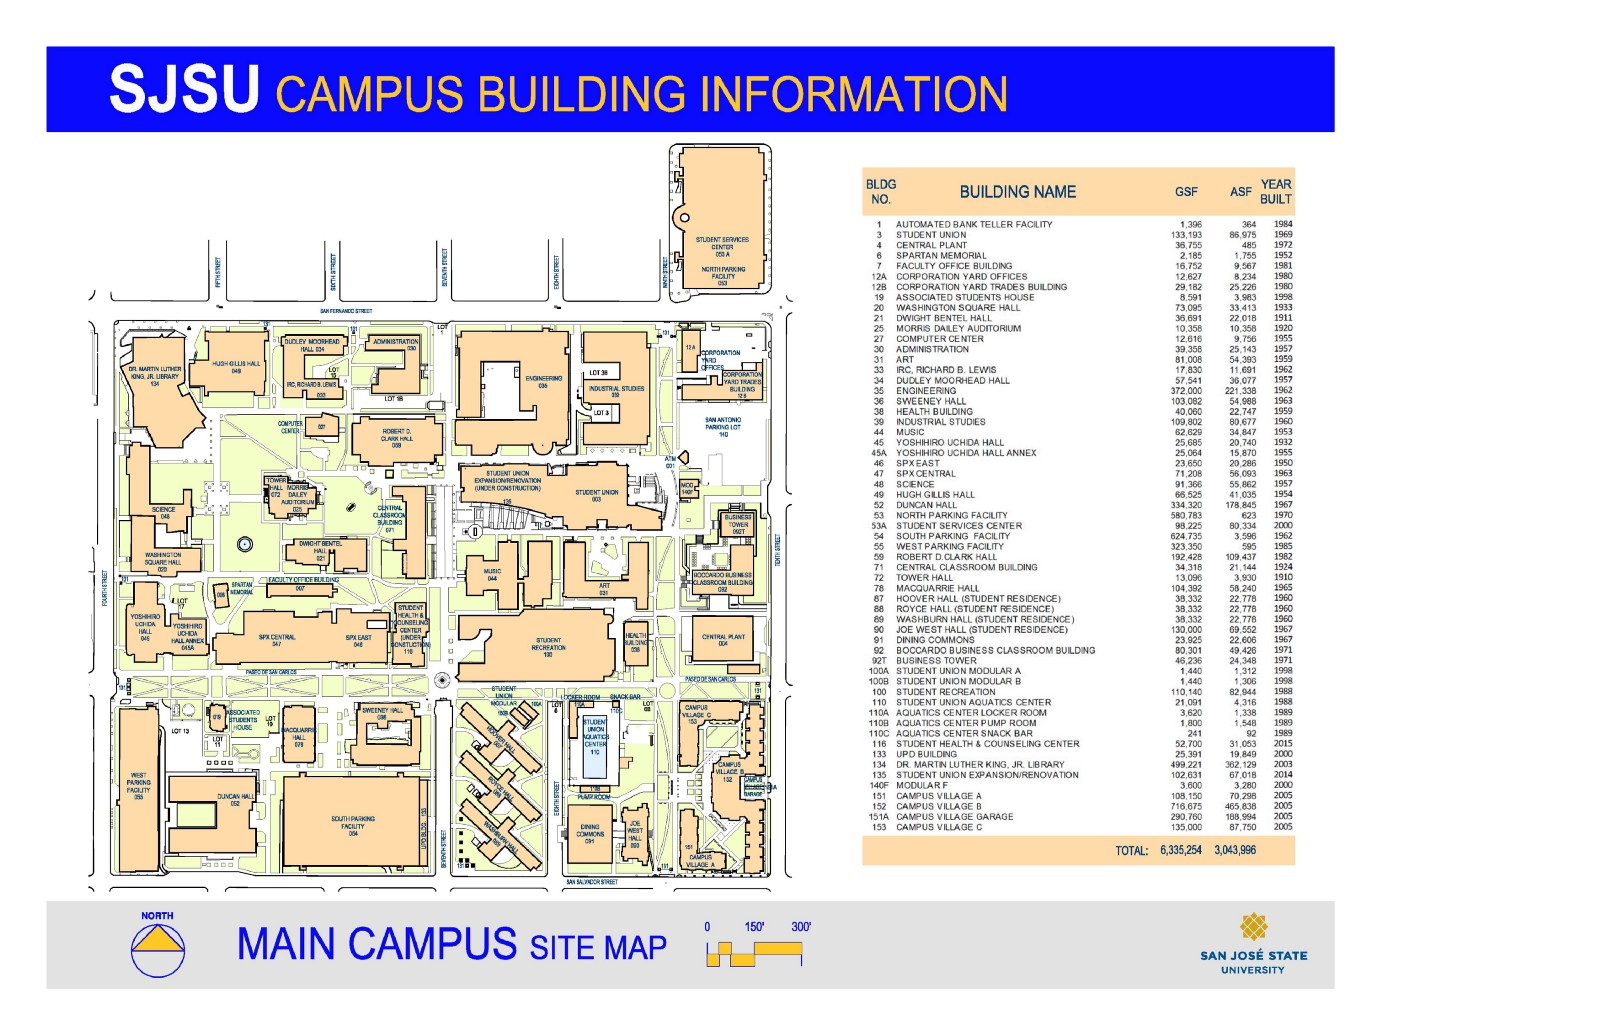 Sjsu Campus Map - World Maps on bsu campus map, central connecticut state university campus map, san diego state campus map, uc campus map, cal campus map, university of san francisco campus map, michigan campus map, nc state campus map, san jose campus map, ssu campus map, fresno campus map, ohio state campus map, evangel campus map, nebraska campus map, alliant university san diego campus map, nevada campus map, shsu campus map, sdsu campus map, hawaii campus map, florida campus map,